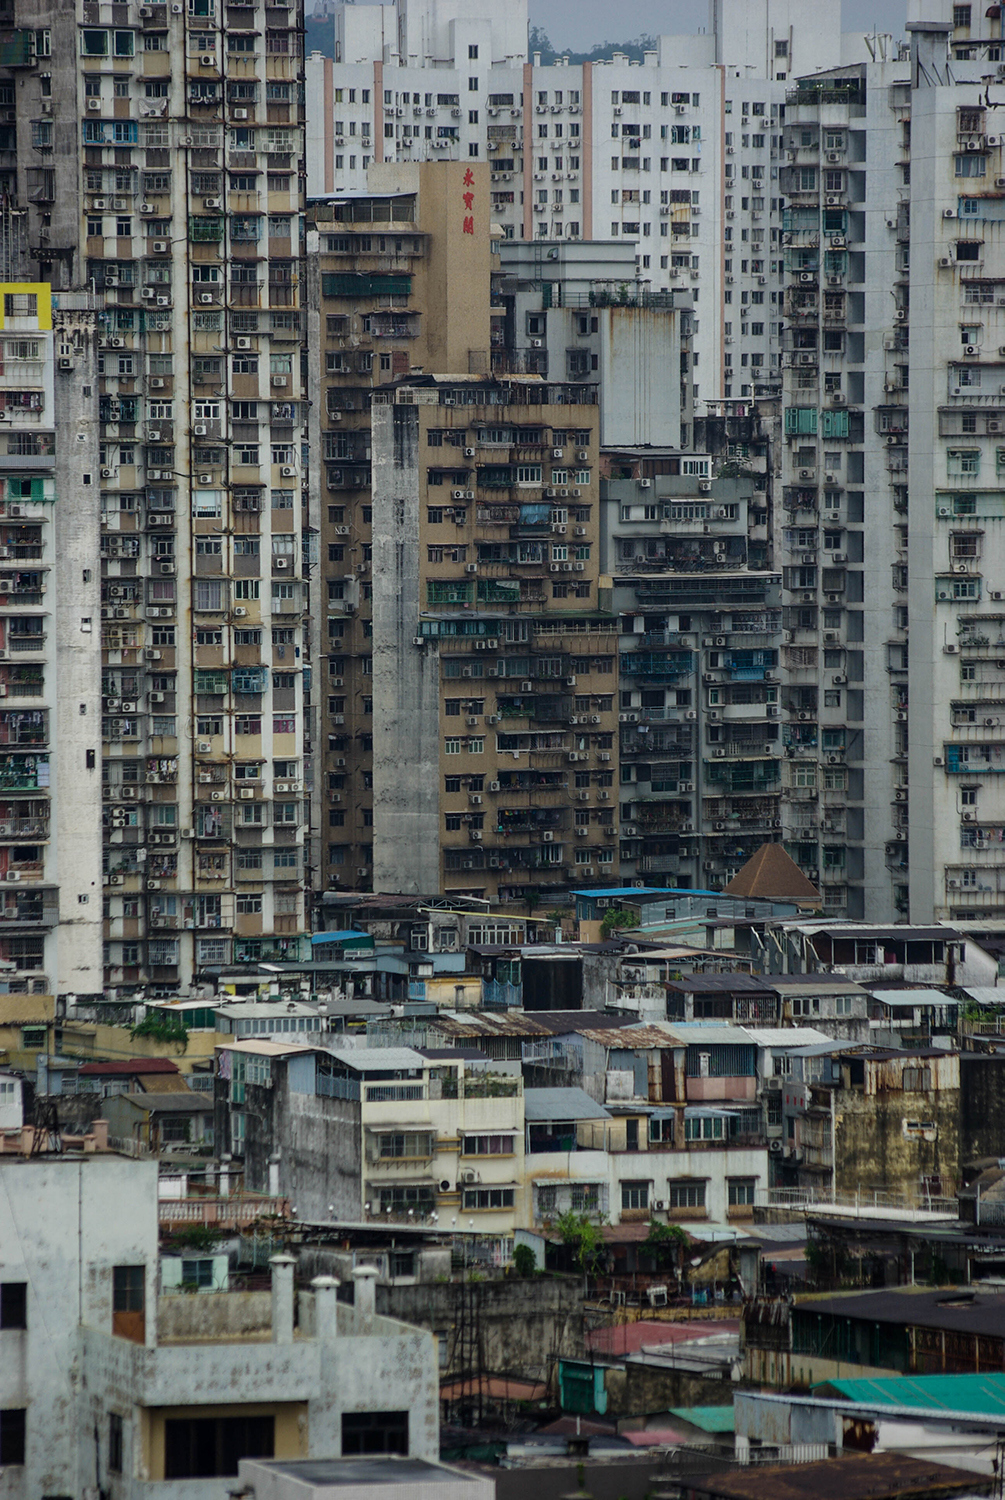 <p>Macao has some of the highest population density figures in the world. Some sections of the geographically constrained city are home to more than 20,000 people per square kilometre. </p>